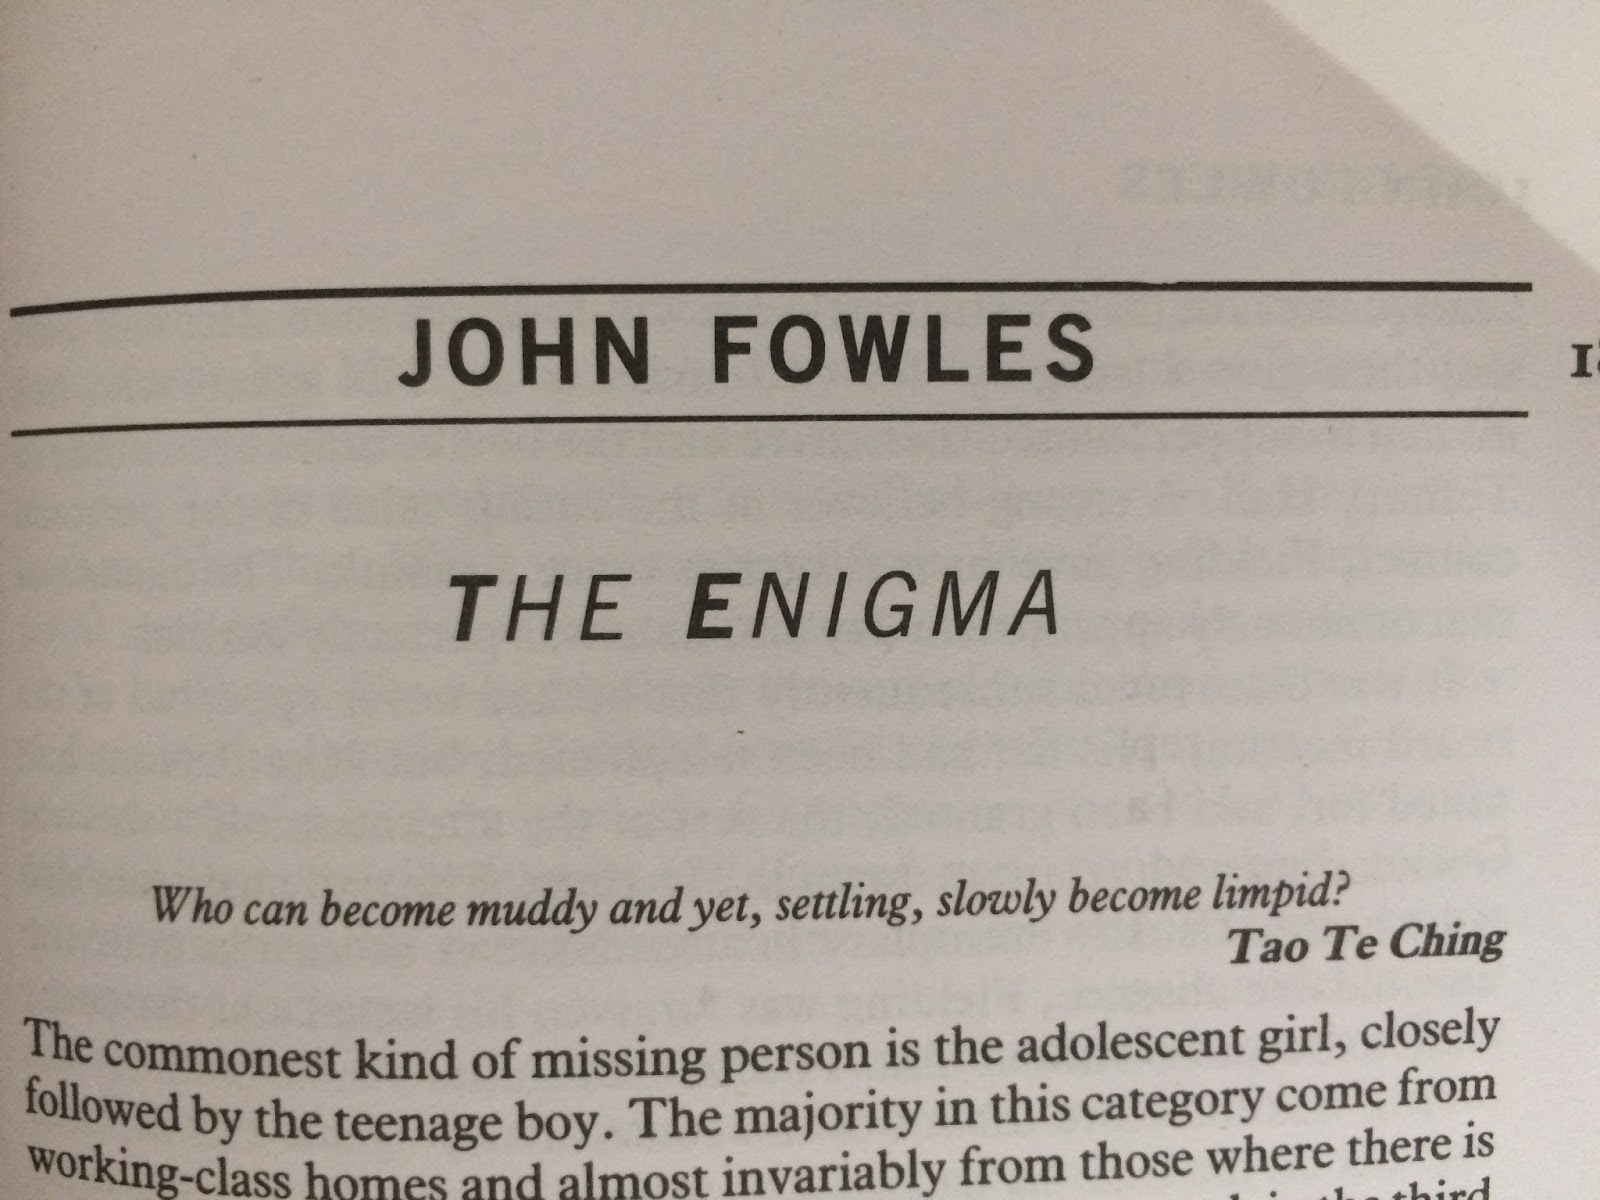 John marcus fielding in the novel the enigma by john fowles